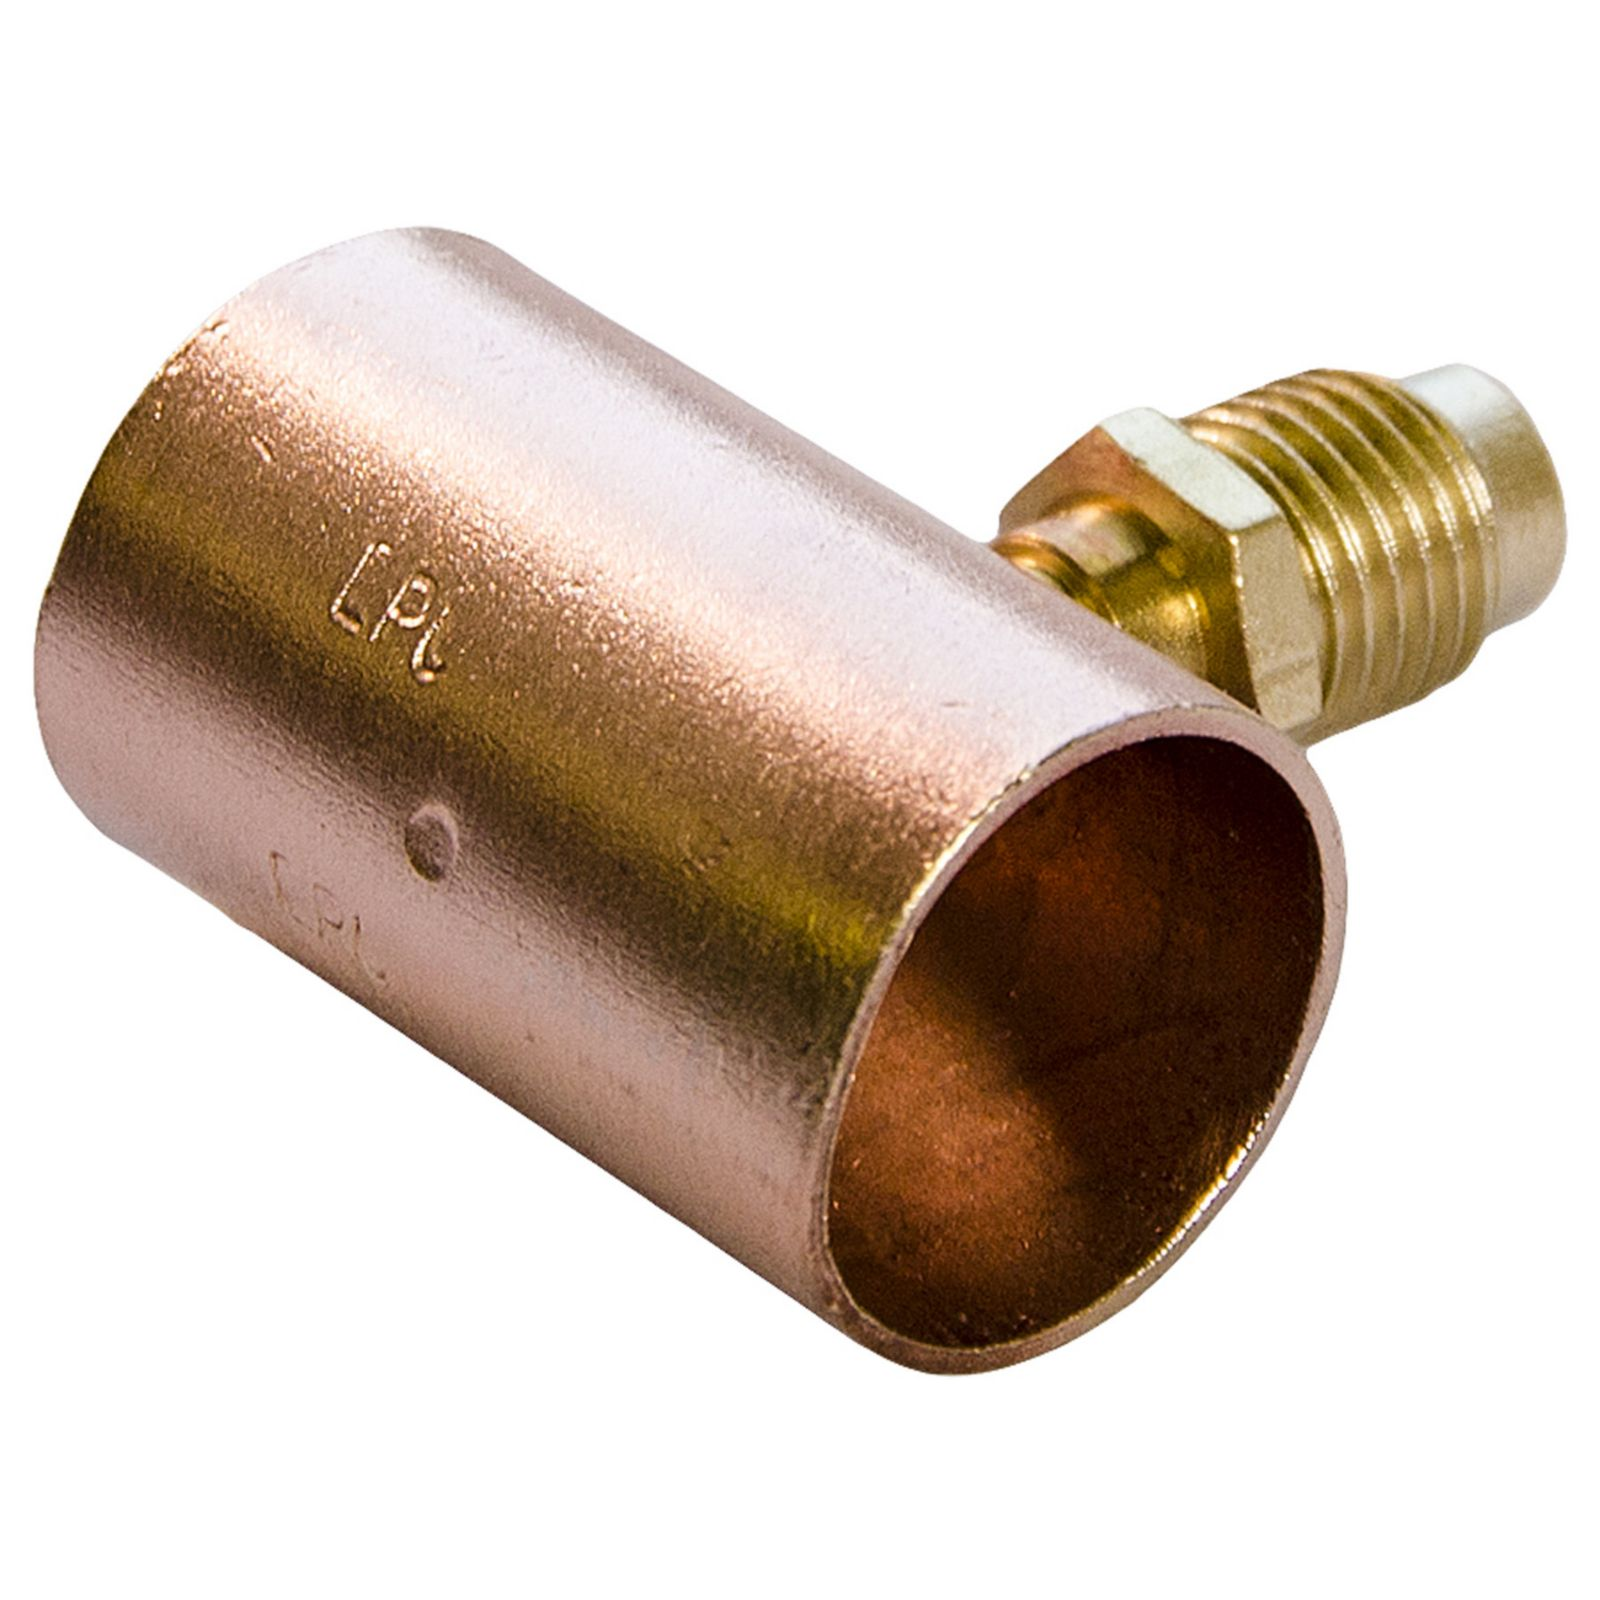 C&D Valve CD8434 - Copper Access Tee, 3/4""